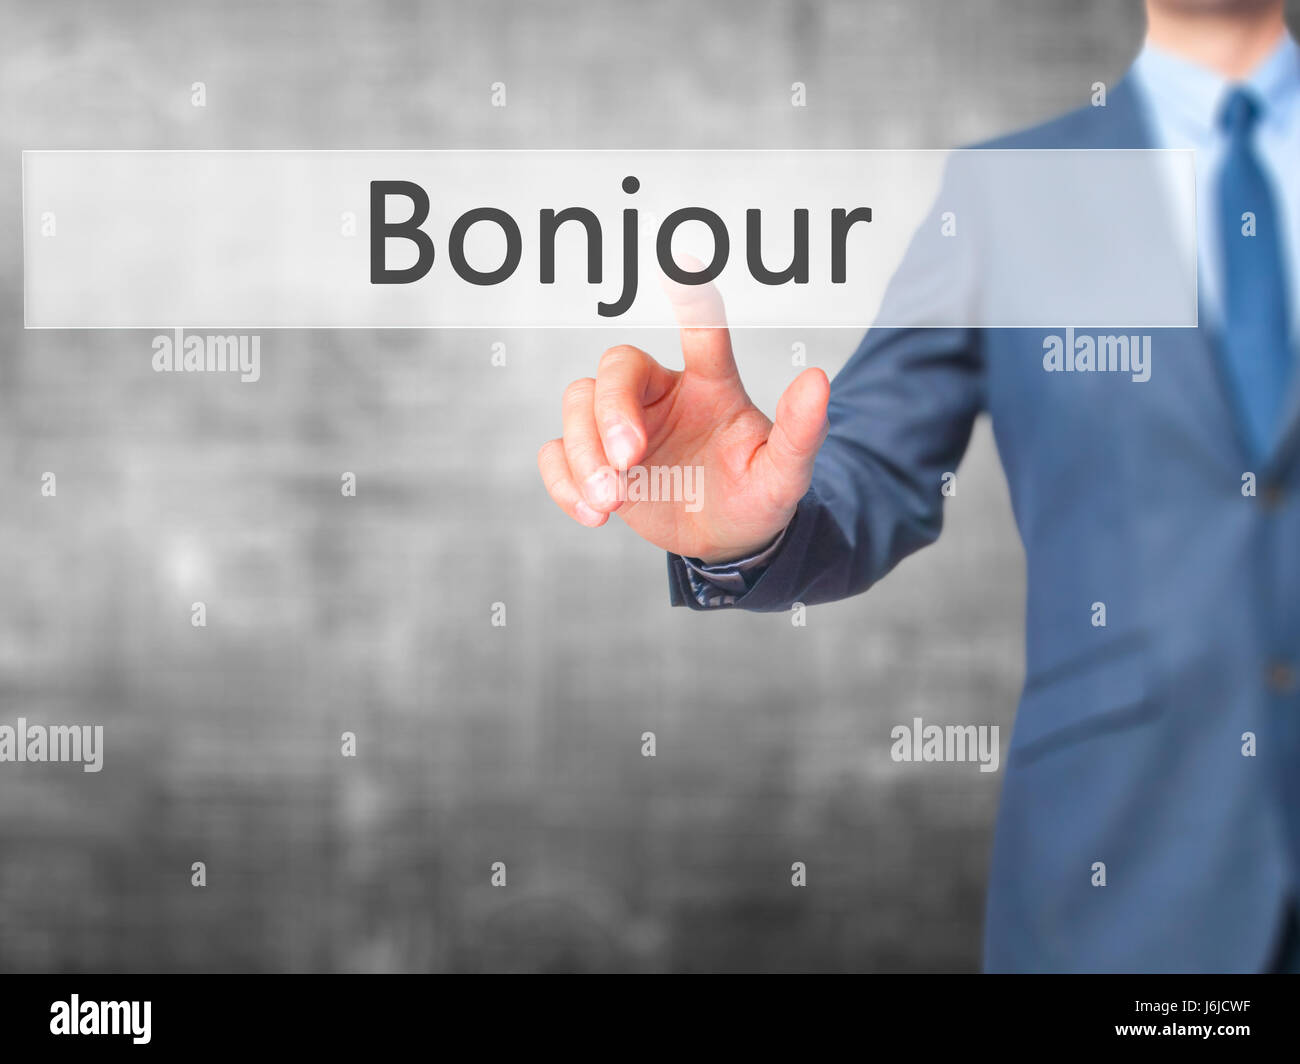 Bonjour Good Morning In French Businessman Hand Touch Button On